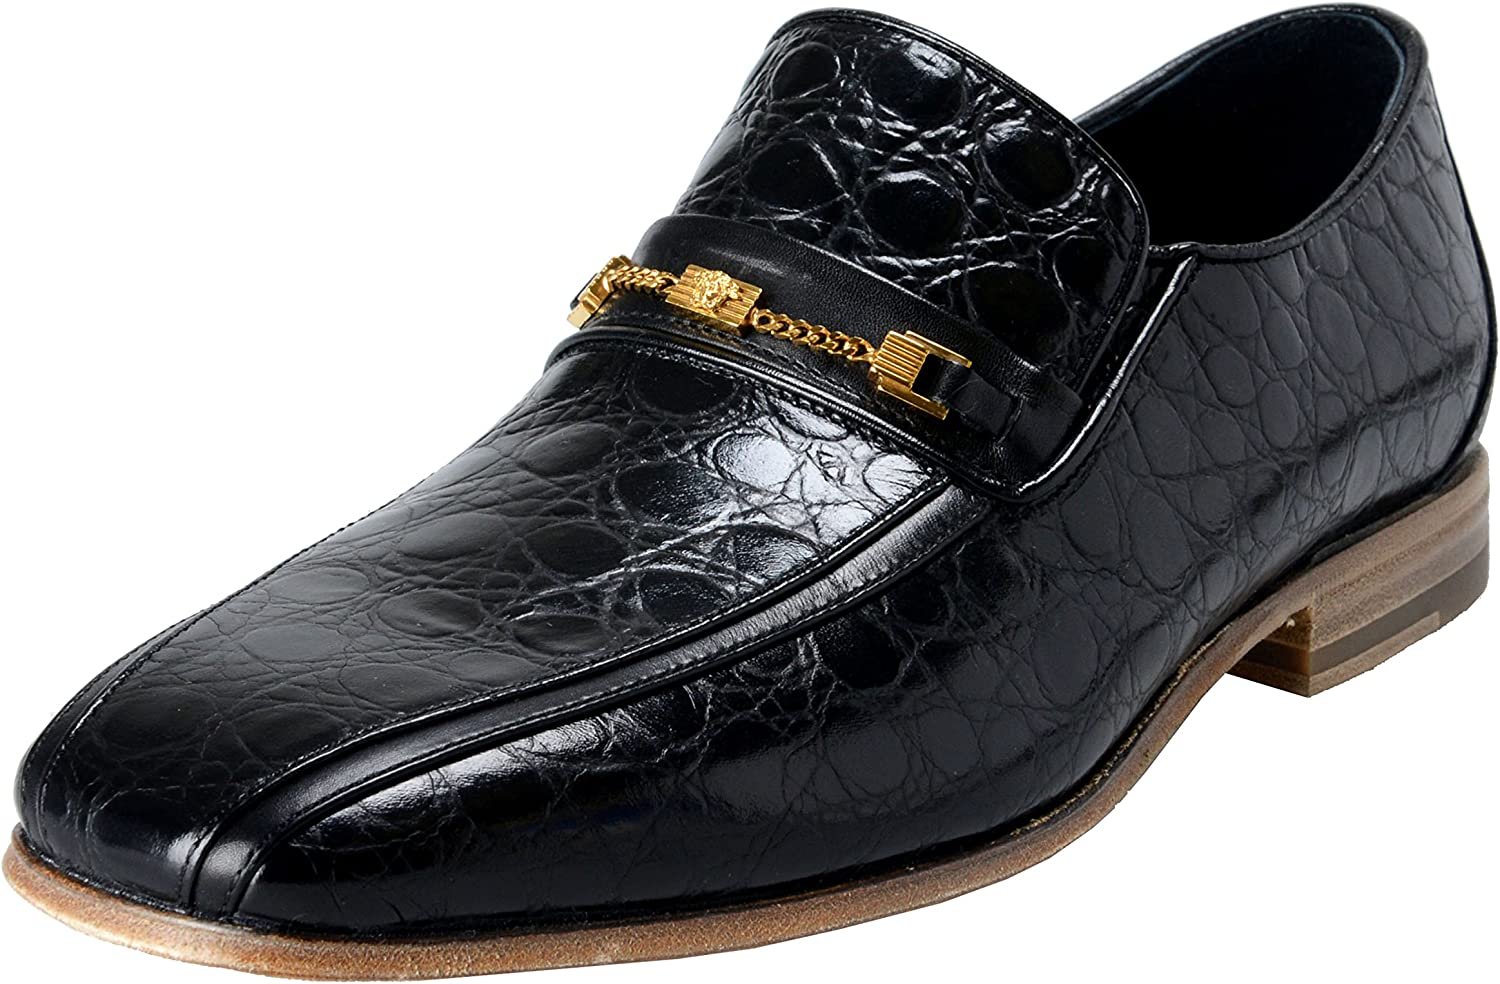 Black Croc Print Leather Loafers Shoes